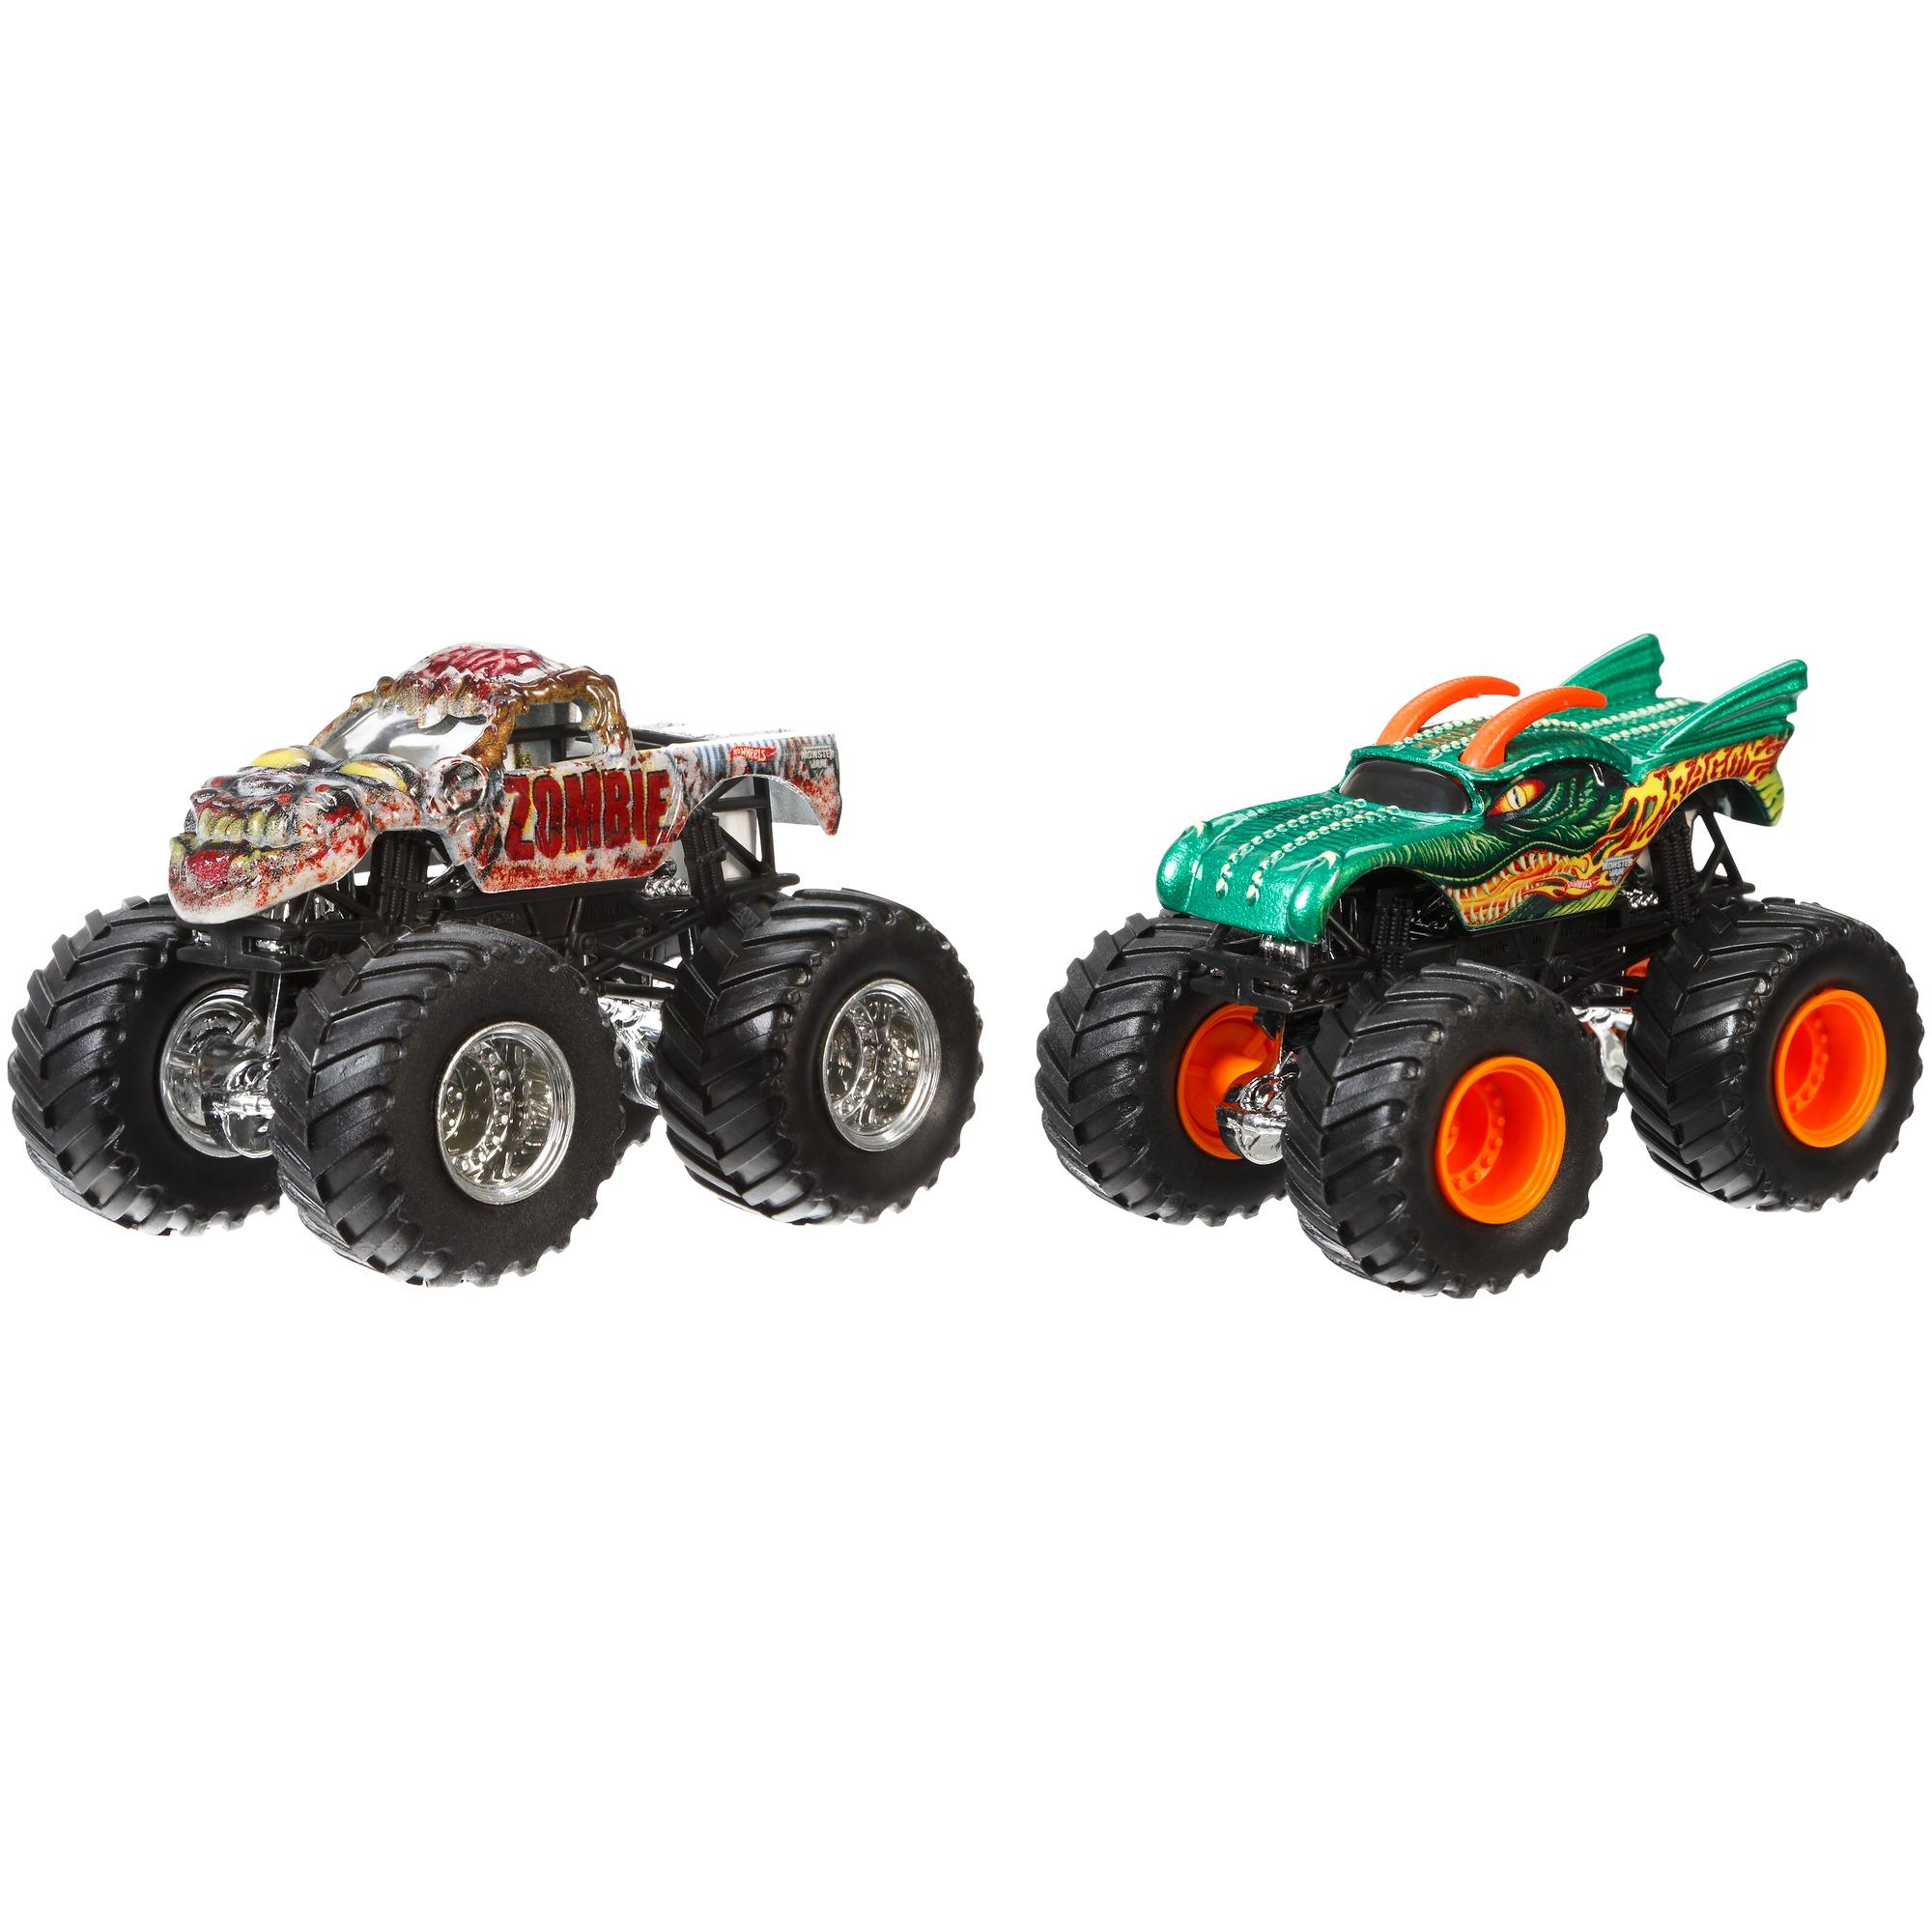 Hot Wheels Monster Jam Demolition Doubles 2-Pack (Styles May Vary)